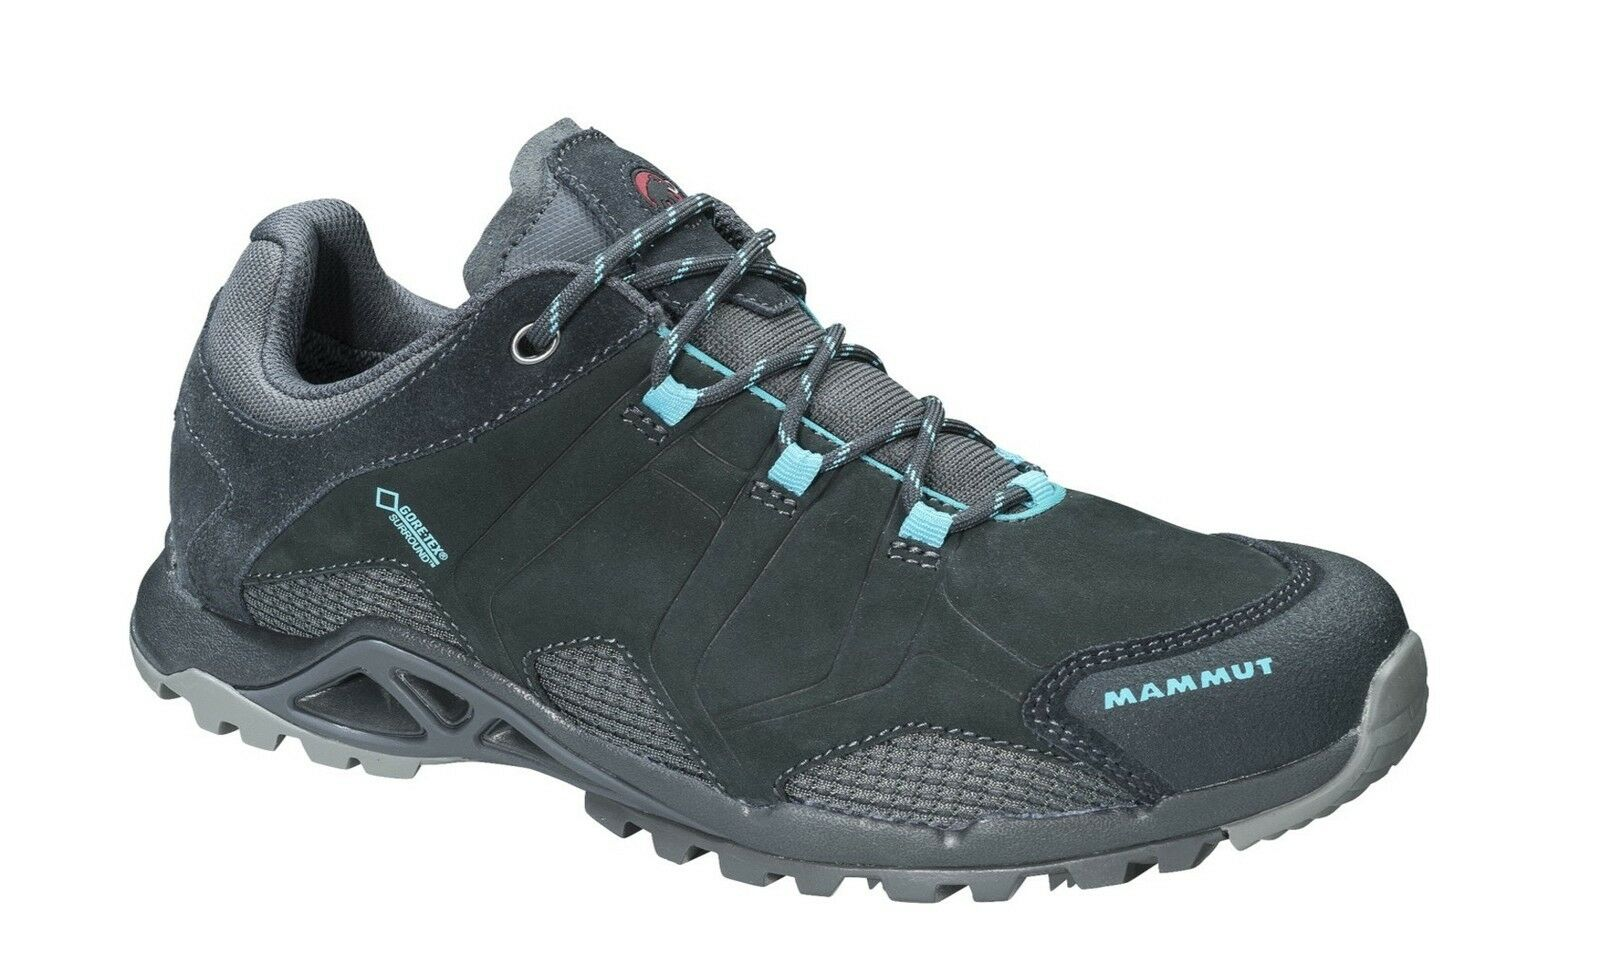 Mammut Comfort Tour Low GTX Surround Women's, Ladies Leicht-Hikingschuh